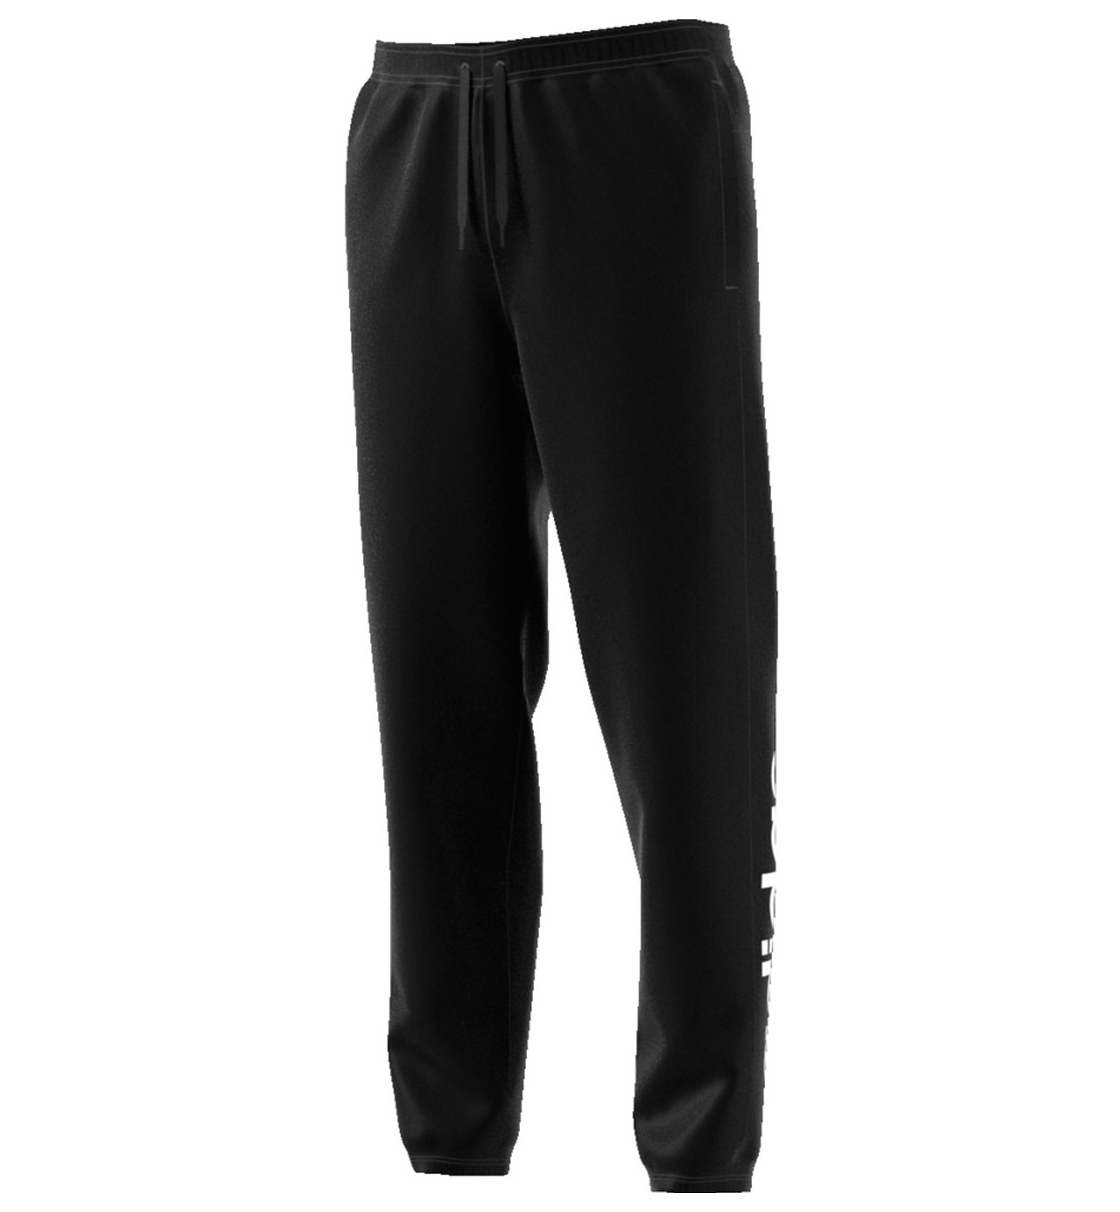 Adidas Fw19 Essentials Linear Tapered Pant French Terry